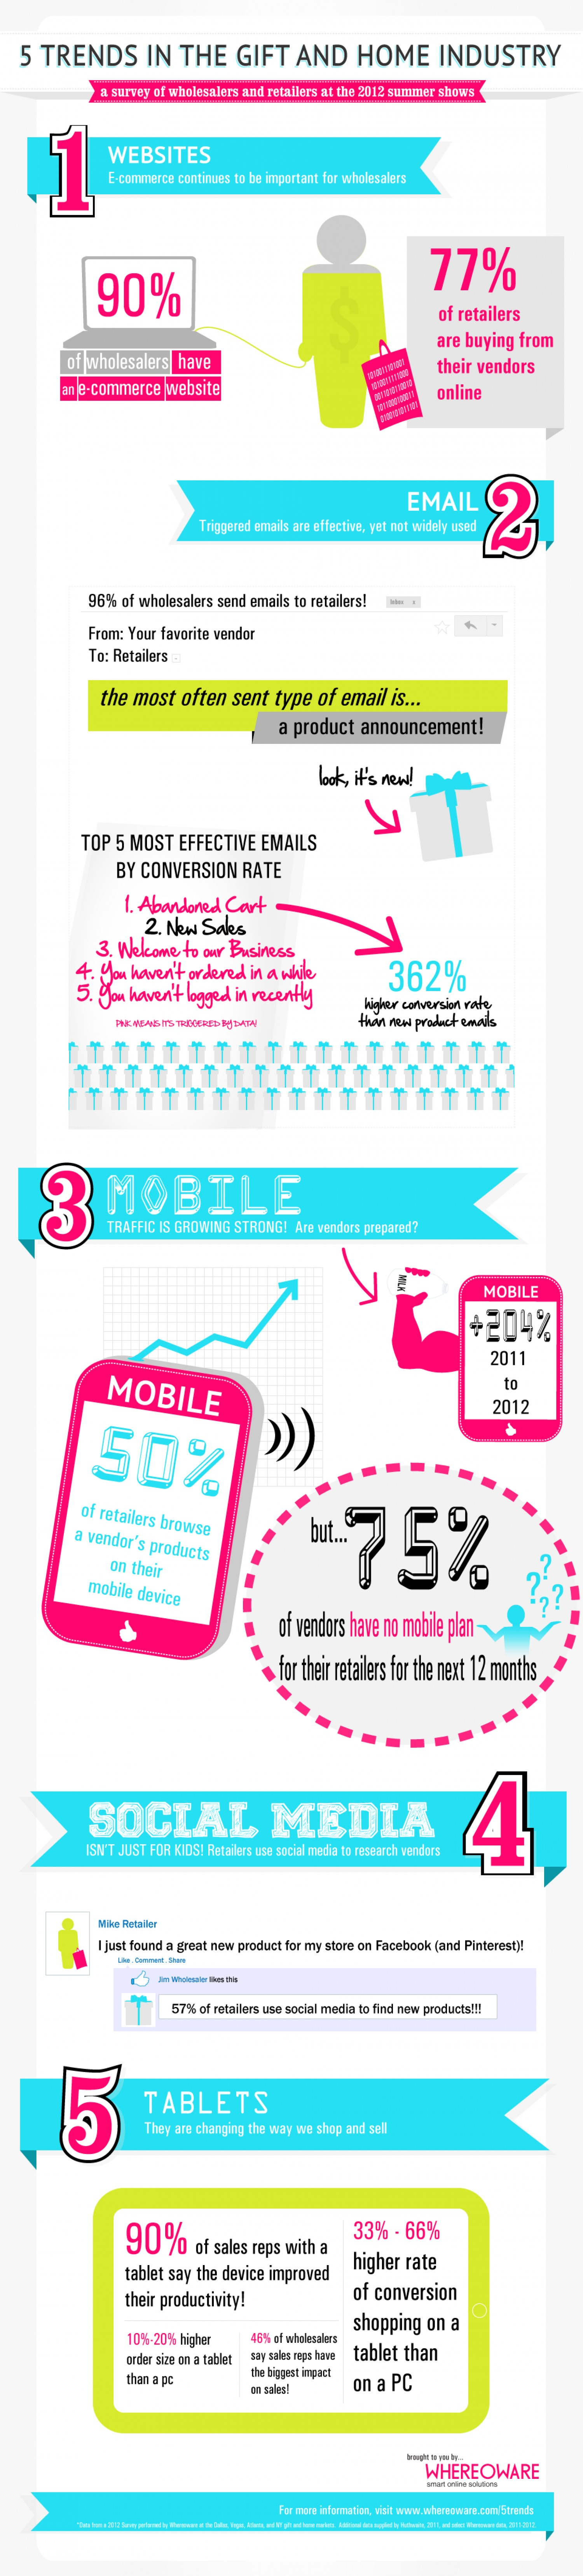 5 Trends in the Gift and Home Industry Infographic ...